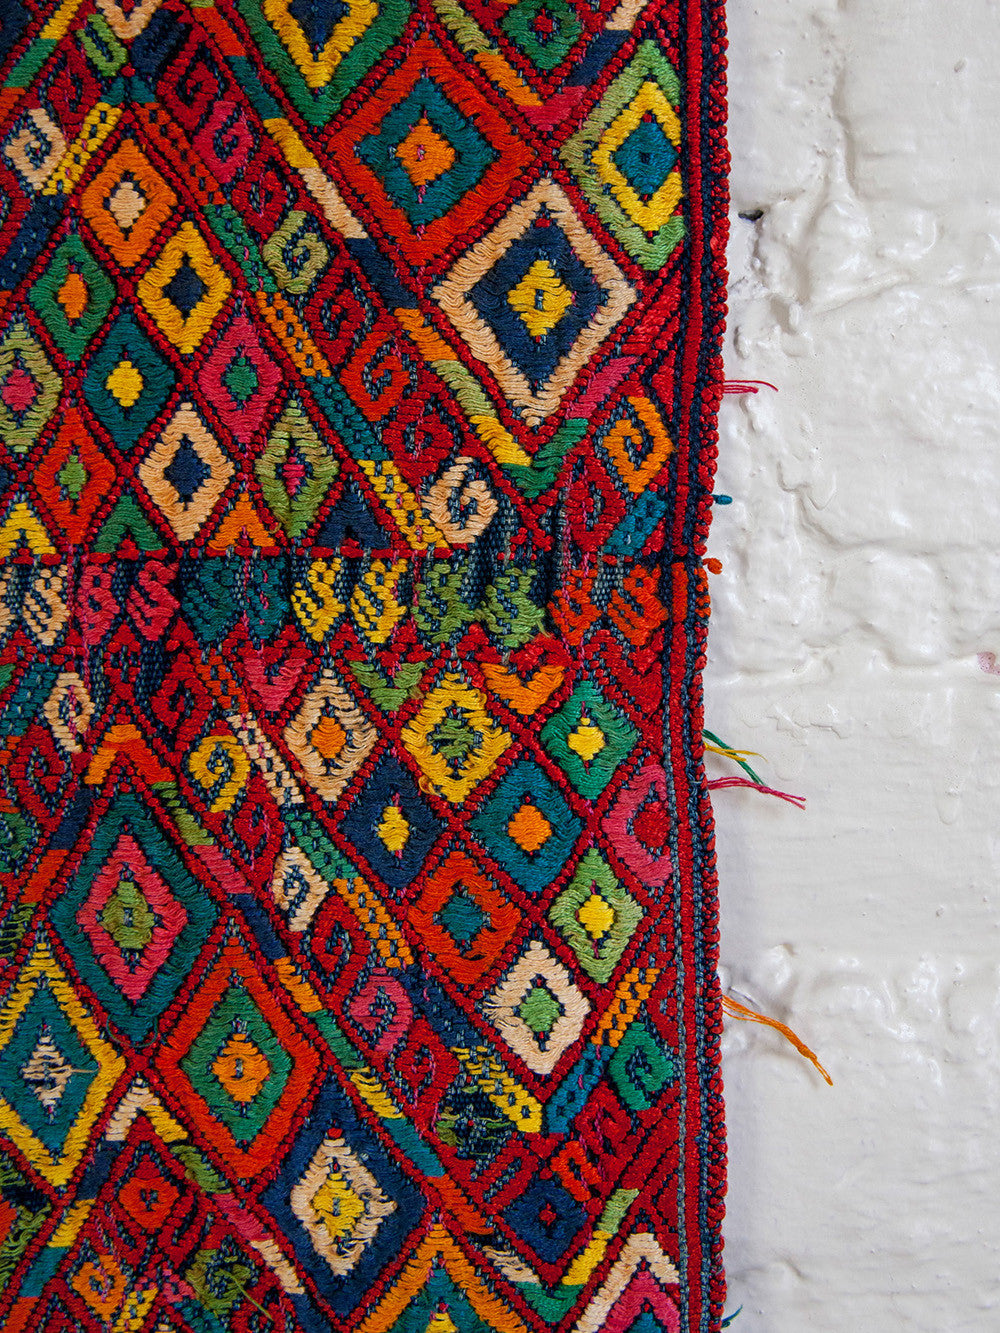 Antique Ceremonial Guatemalan Textile